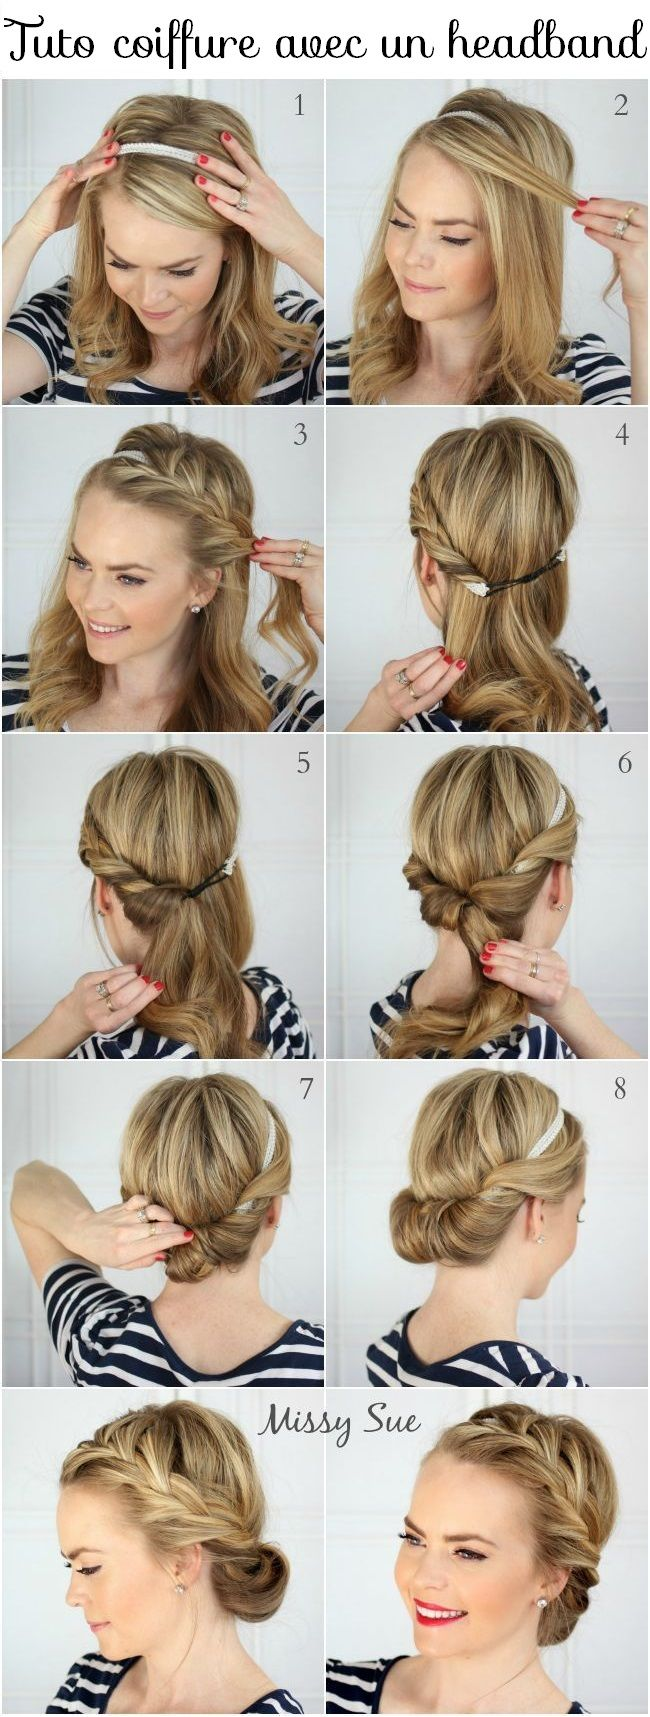 best hair style images on pinterest chignons easy hairstyle